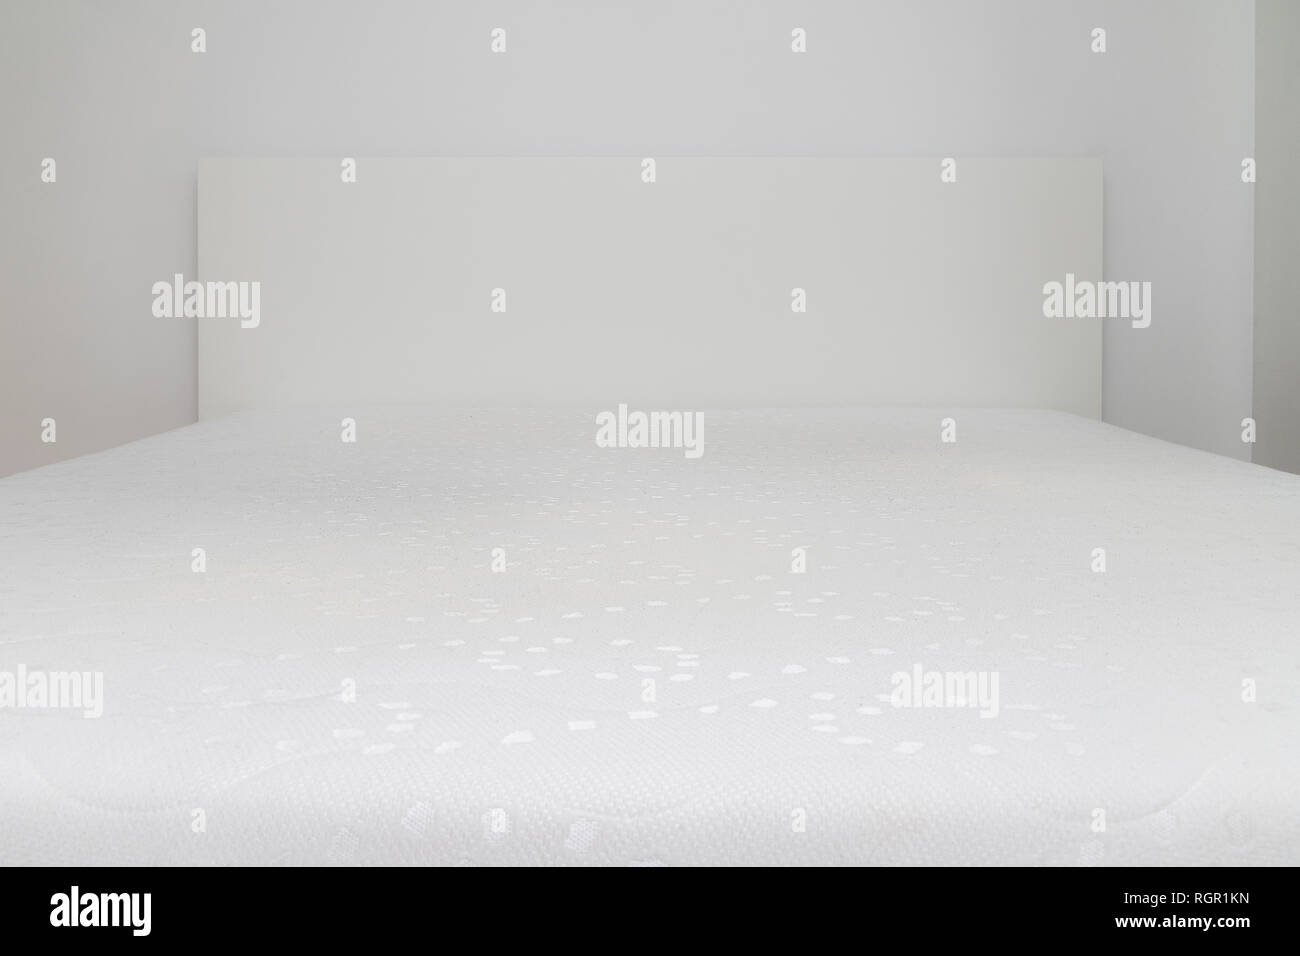 Close Up Of Memory Foam Mattress On The Bed Frame At Sleeping Room Comfort Choosing Mattress Stock Photo Alamy